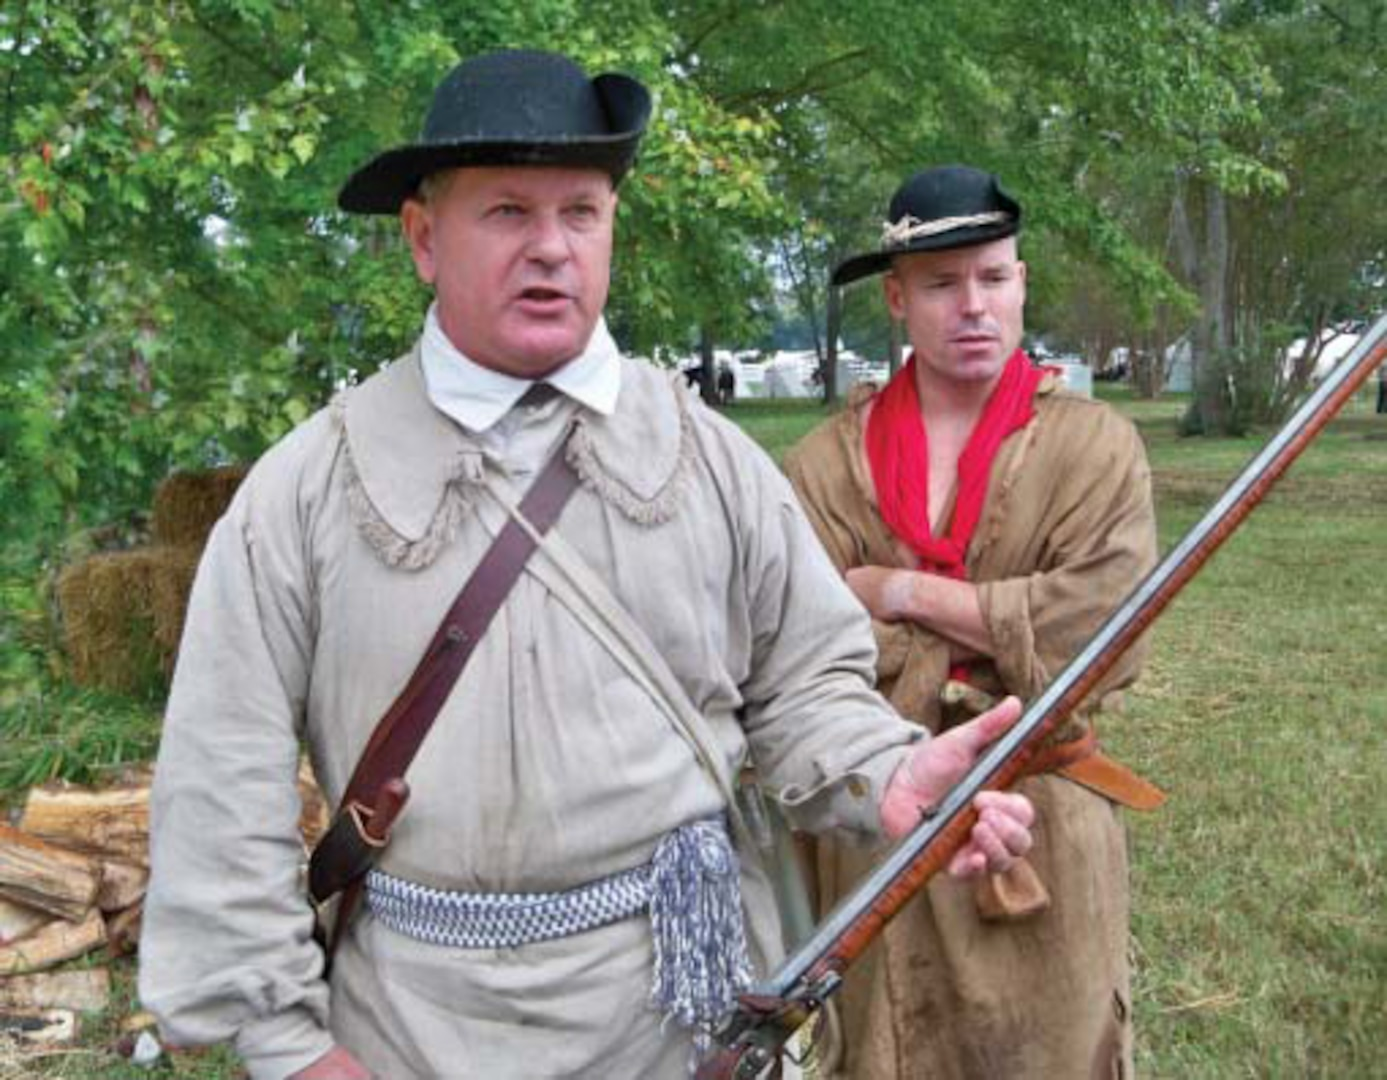 """Dressed in typical attire of back-country riflemen, Revolutionary War living historians in Virginia prepare for a reenactment. The round hats and hunting shirts are the same as those described in the accounts of the first riflemen within companies such as the Berkeley County Rifles who made the """"Beeline to Boston."""""""